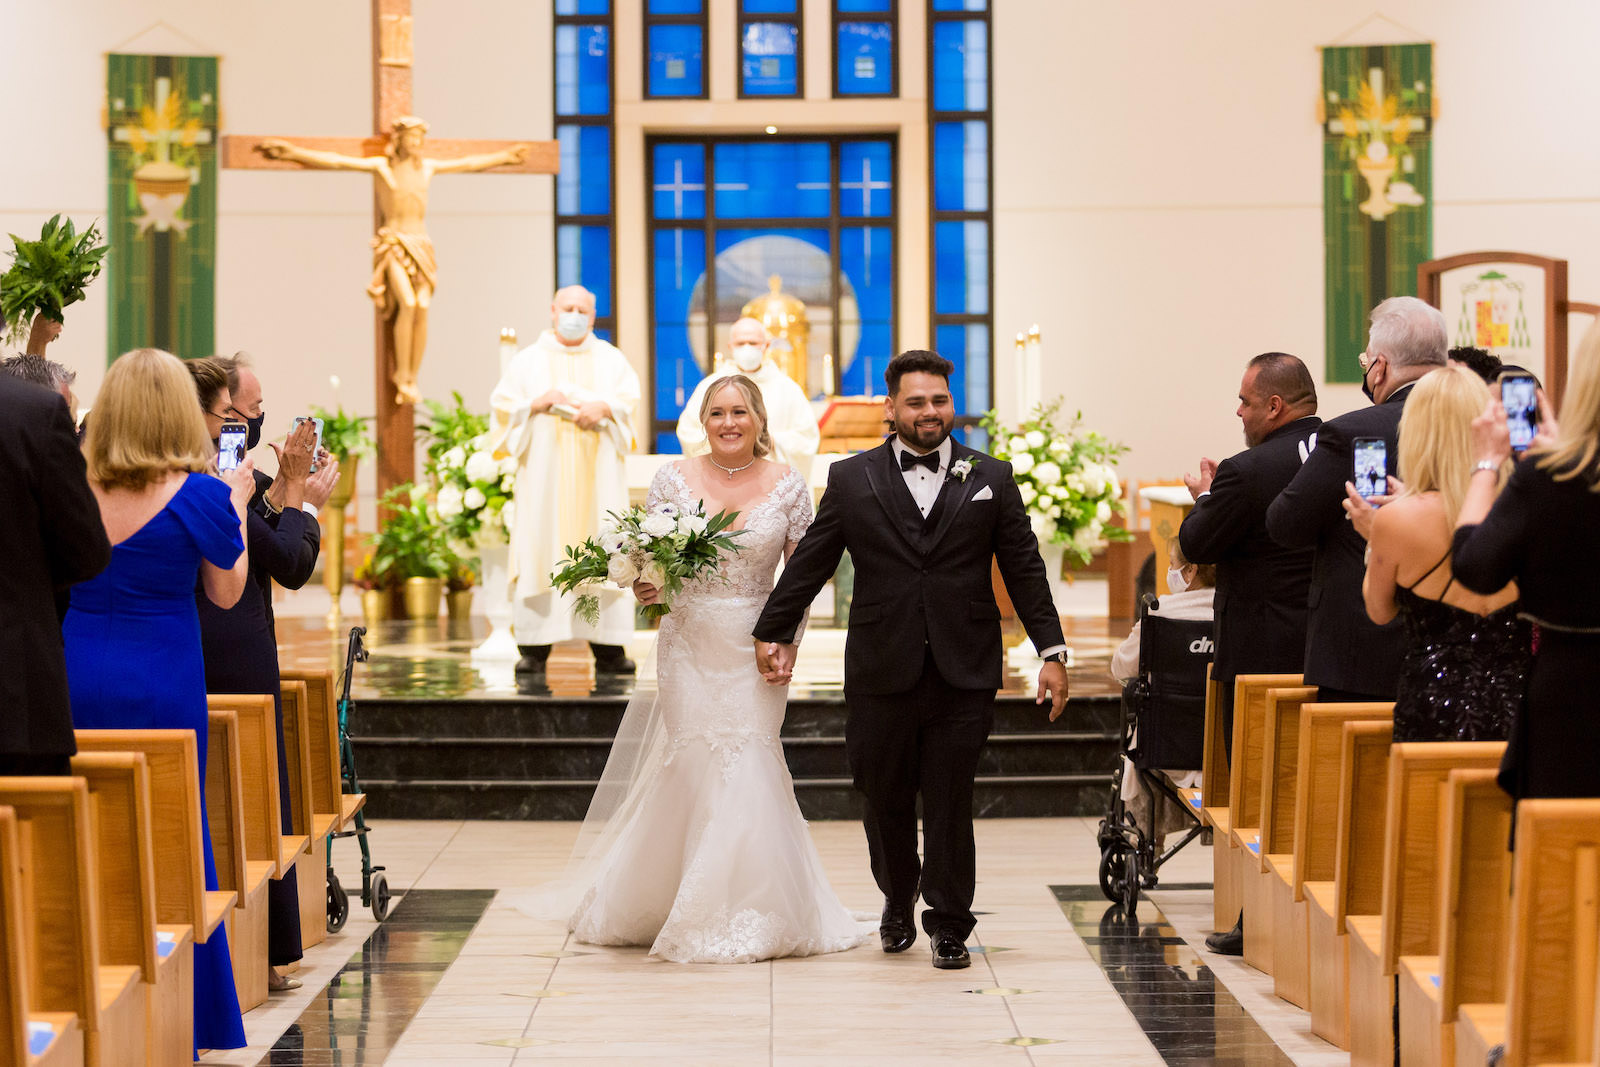 Tampa Bride and Groom Exiting Traditional Church Wedding Ceremony St. Jude's Cathedral | Wedding Planner Parties A'la Carte